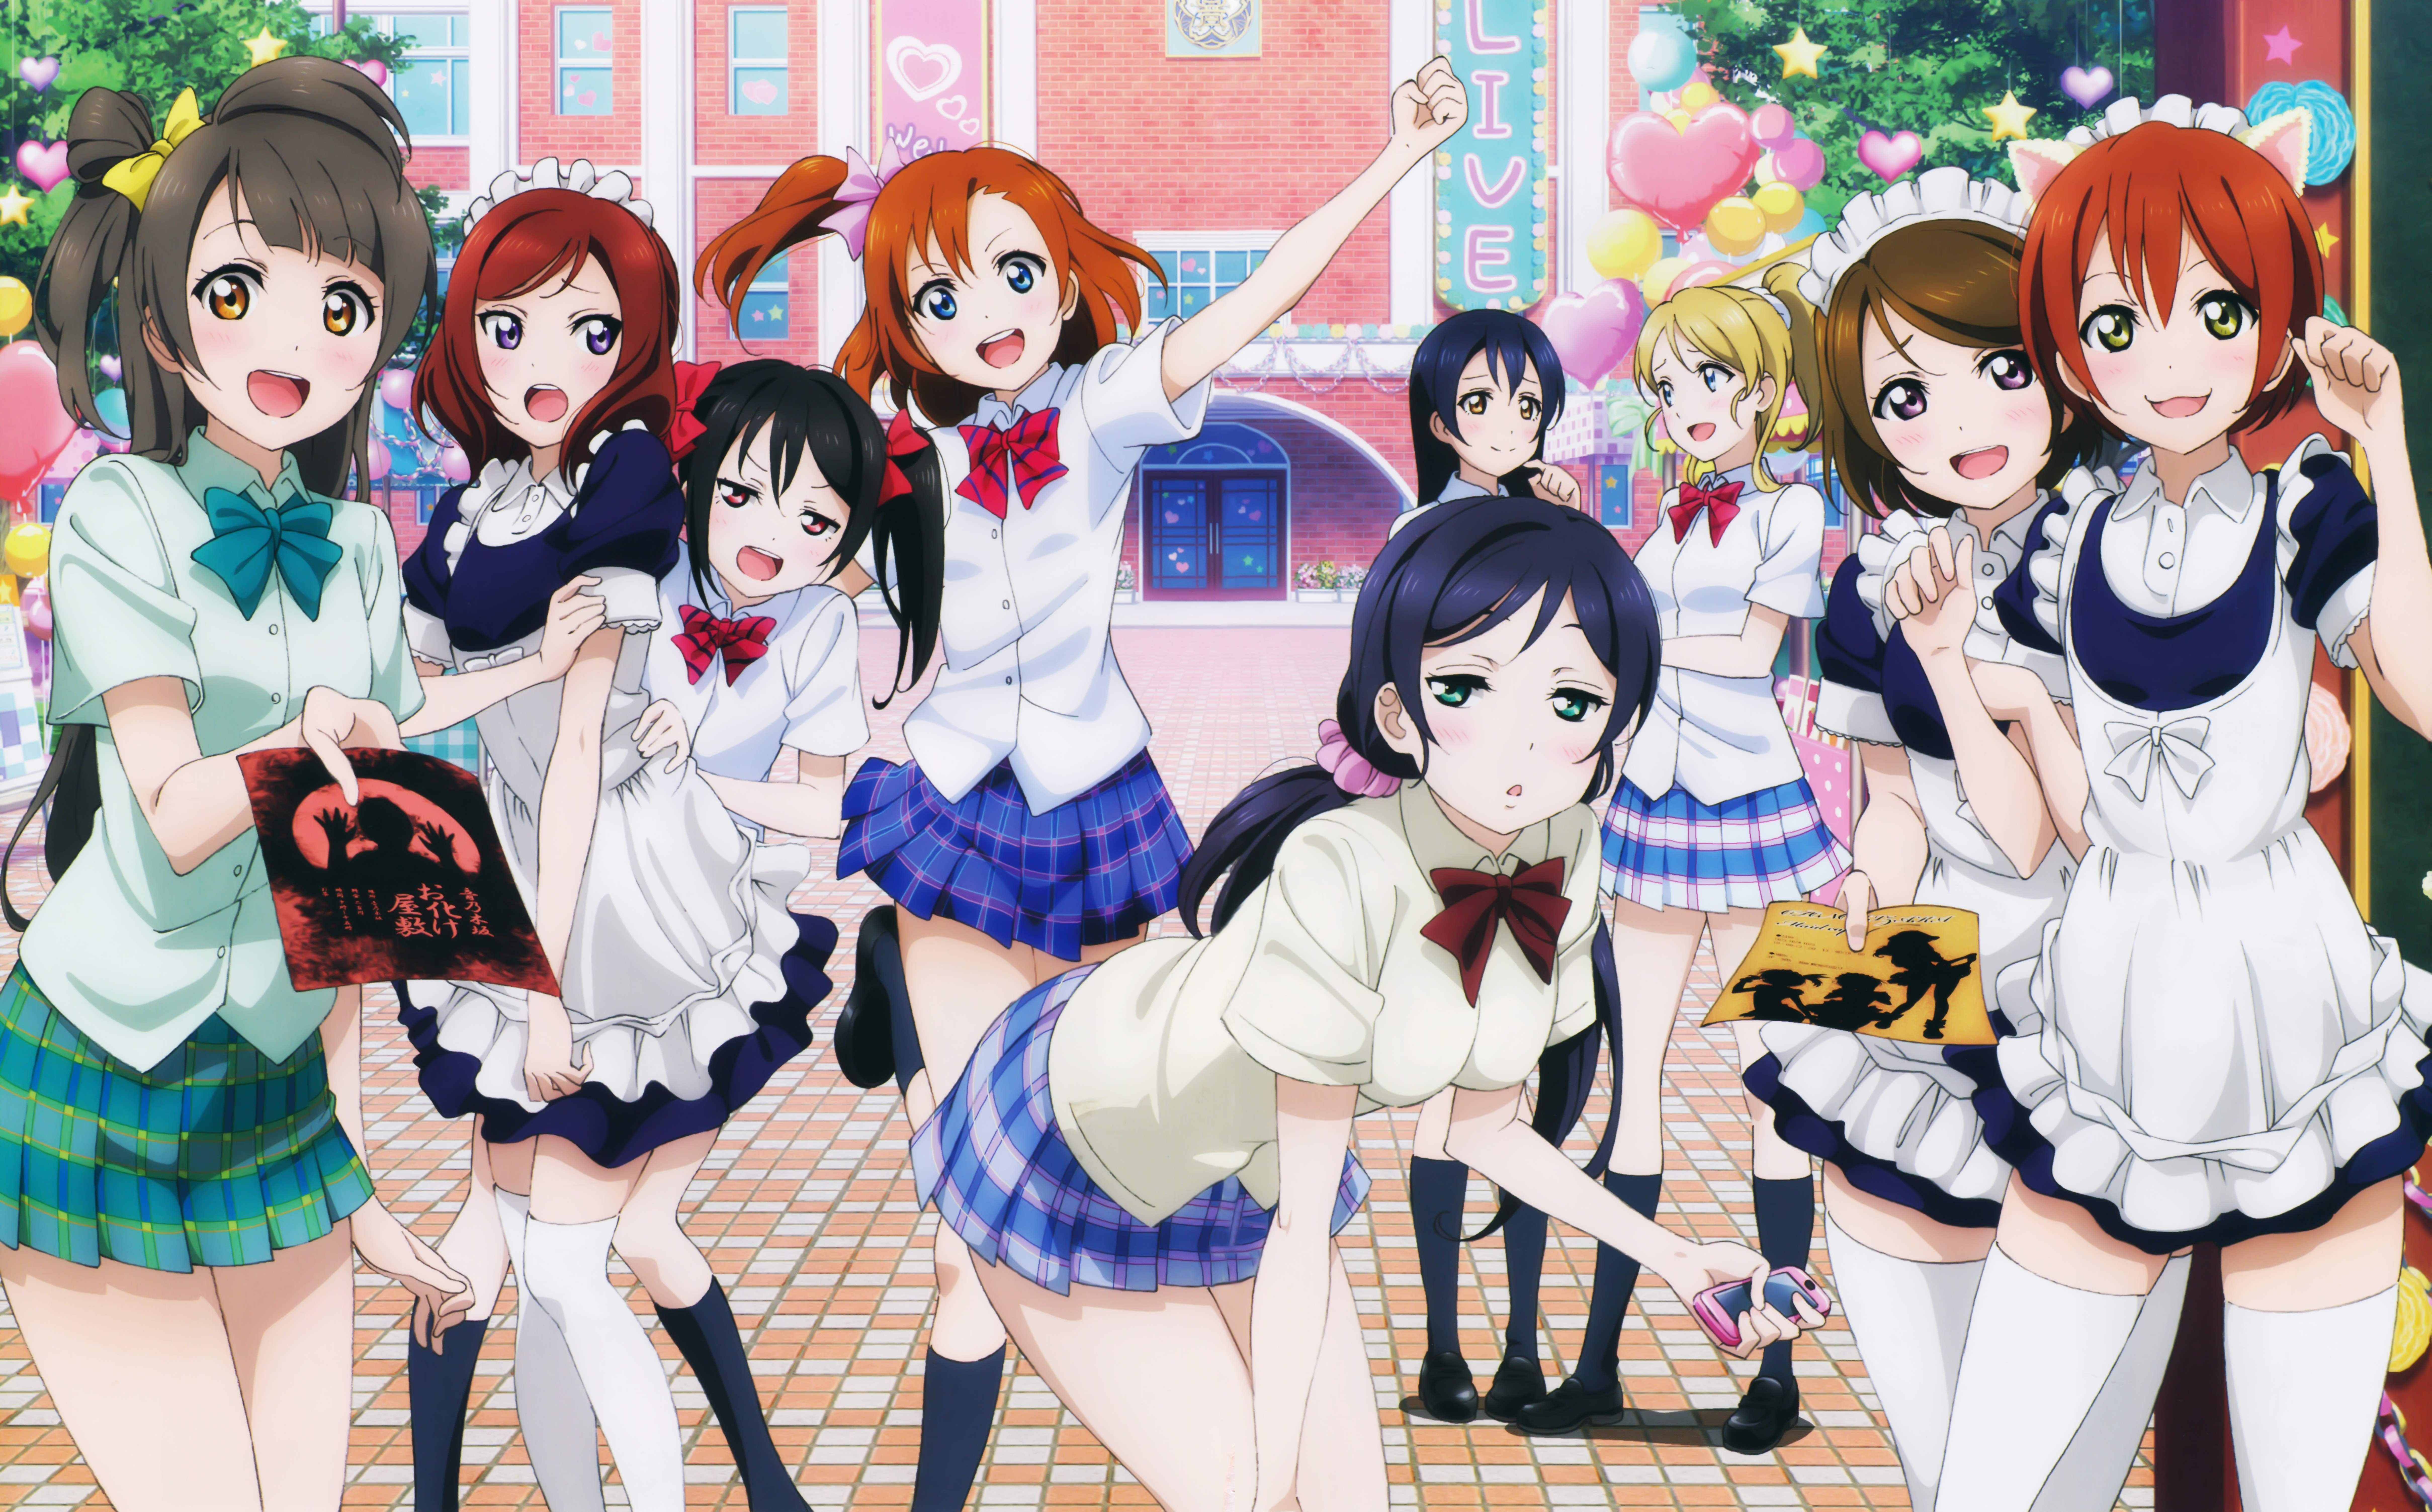 Love Images Live Wallpaper : 8K Love Live Wallpaper : GiIvaSunner